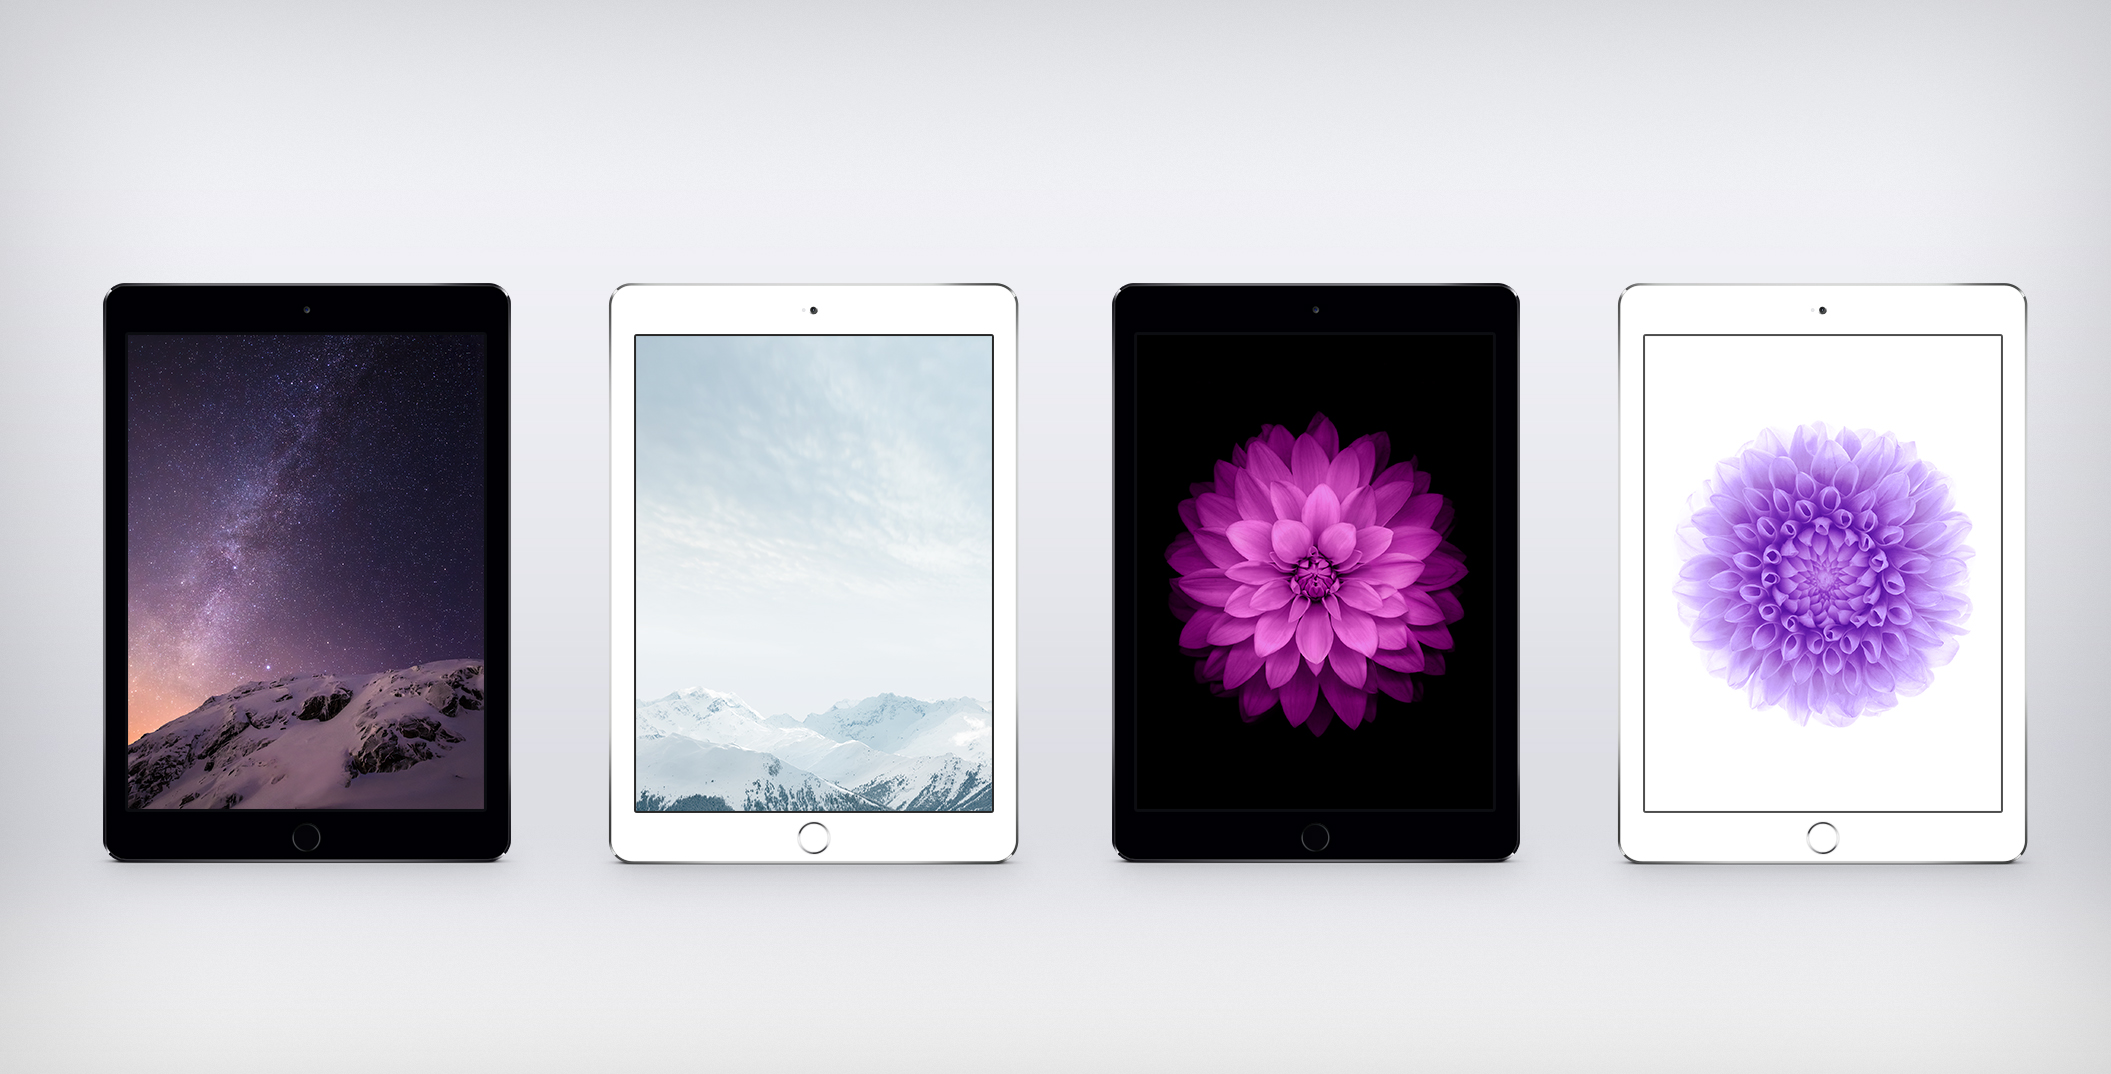 iOS 8 GM Wallpapers For iPad